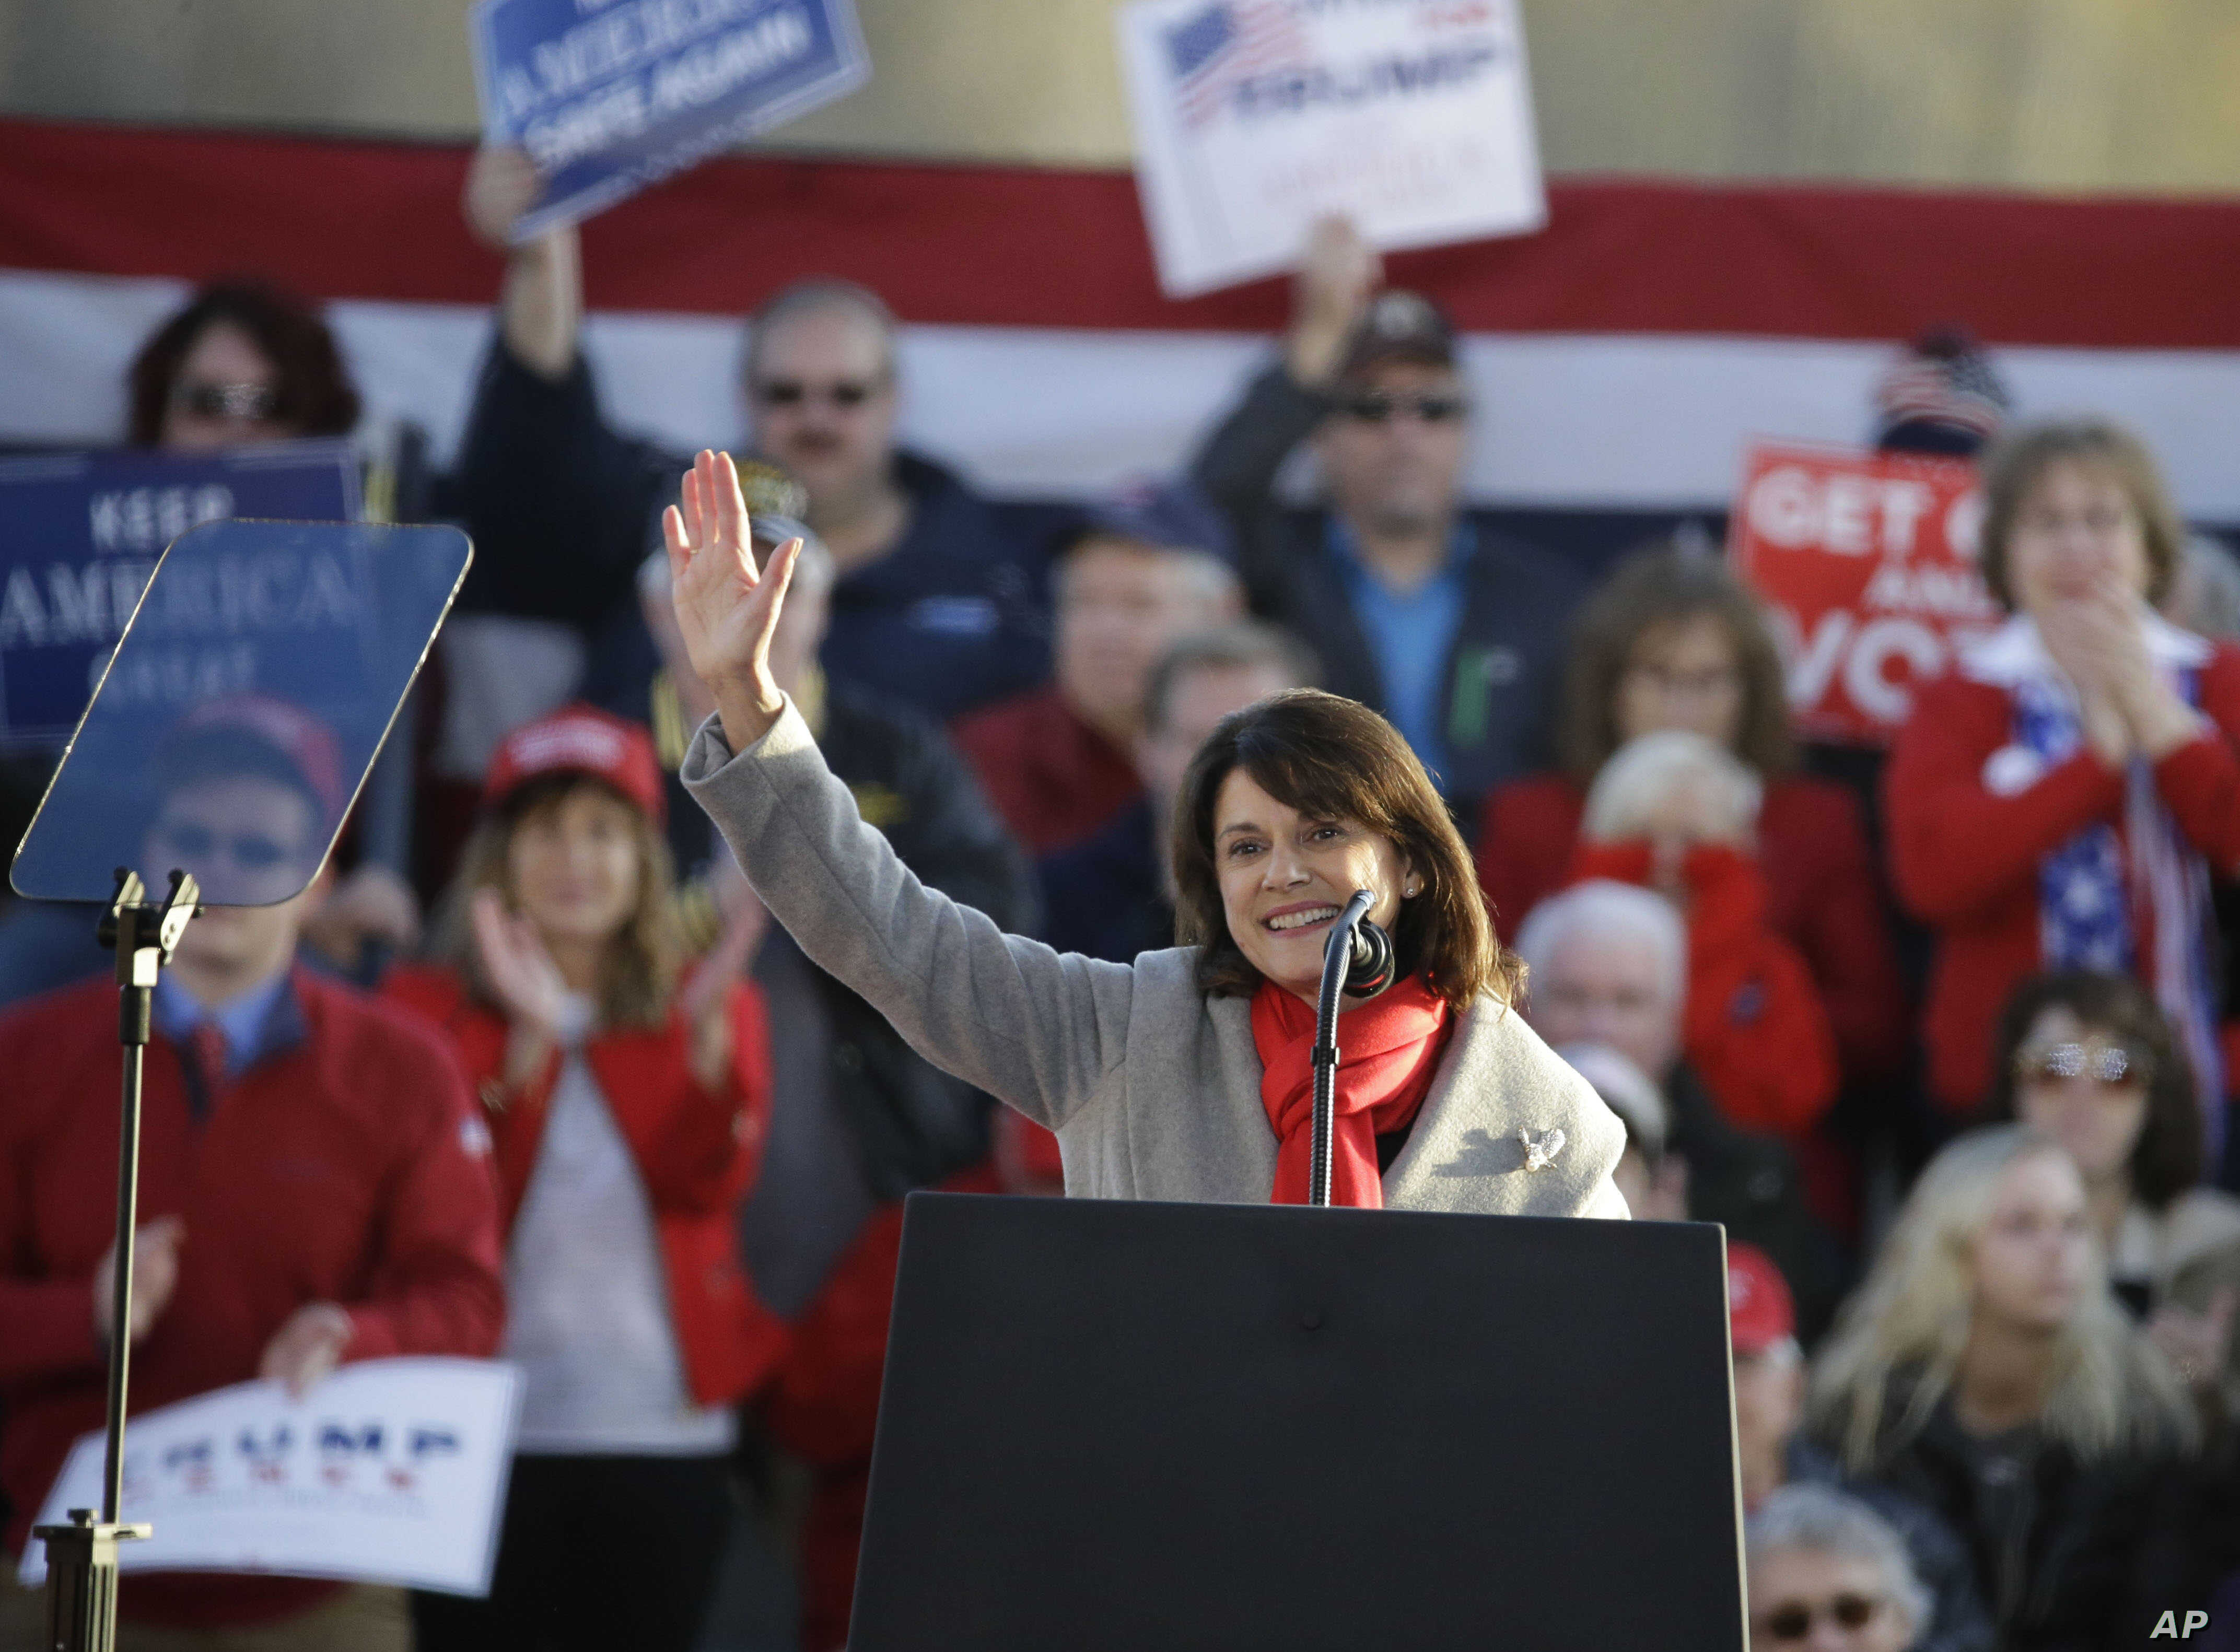 Wisconsin State Senator Leah Vukmir R-Wis., and Republican U.S. Senate candidate, speaks during a rally Oct. 24, 2018, in Mosinee, Wis. The rally will be headlined by President Donald Trump.